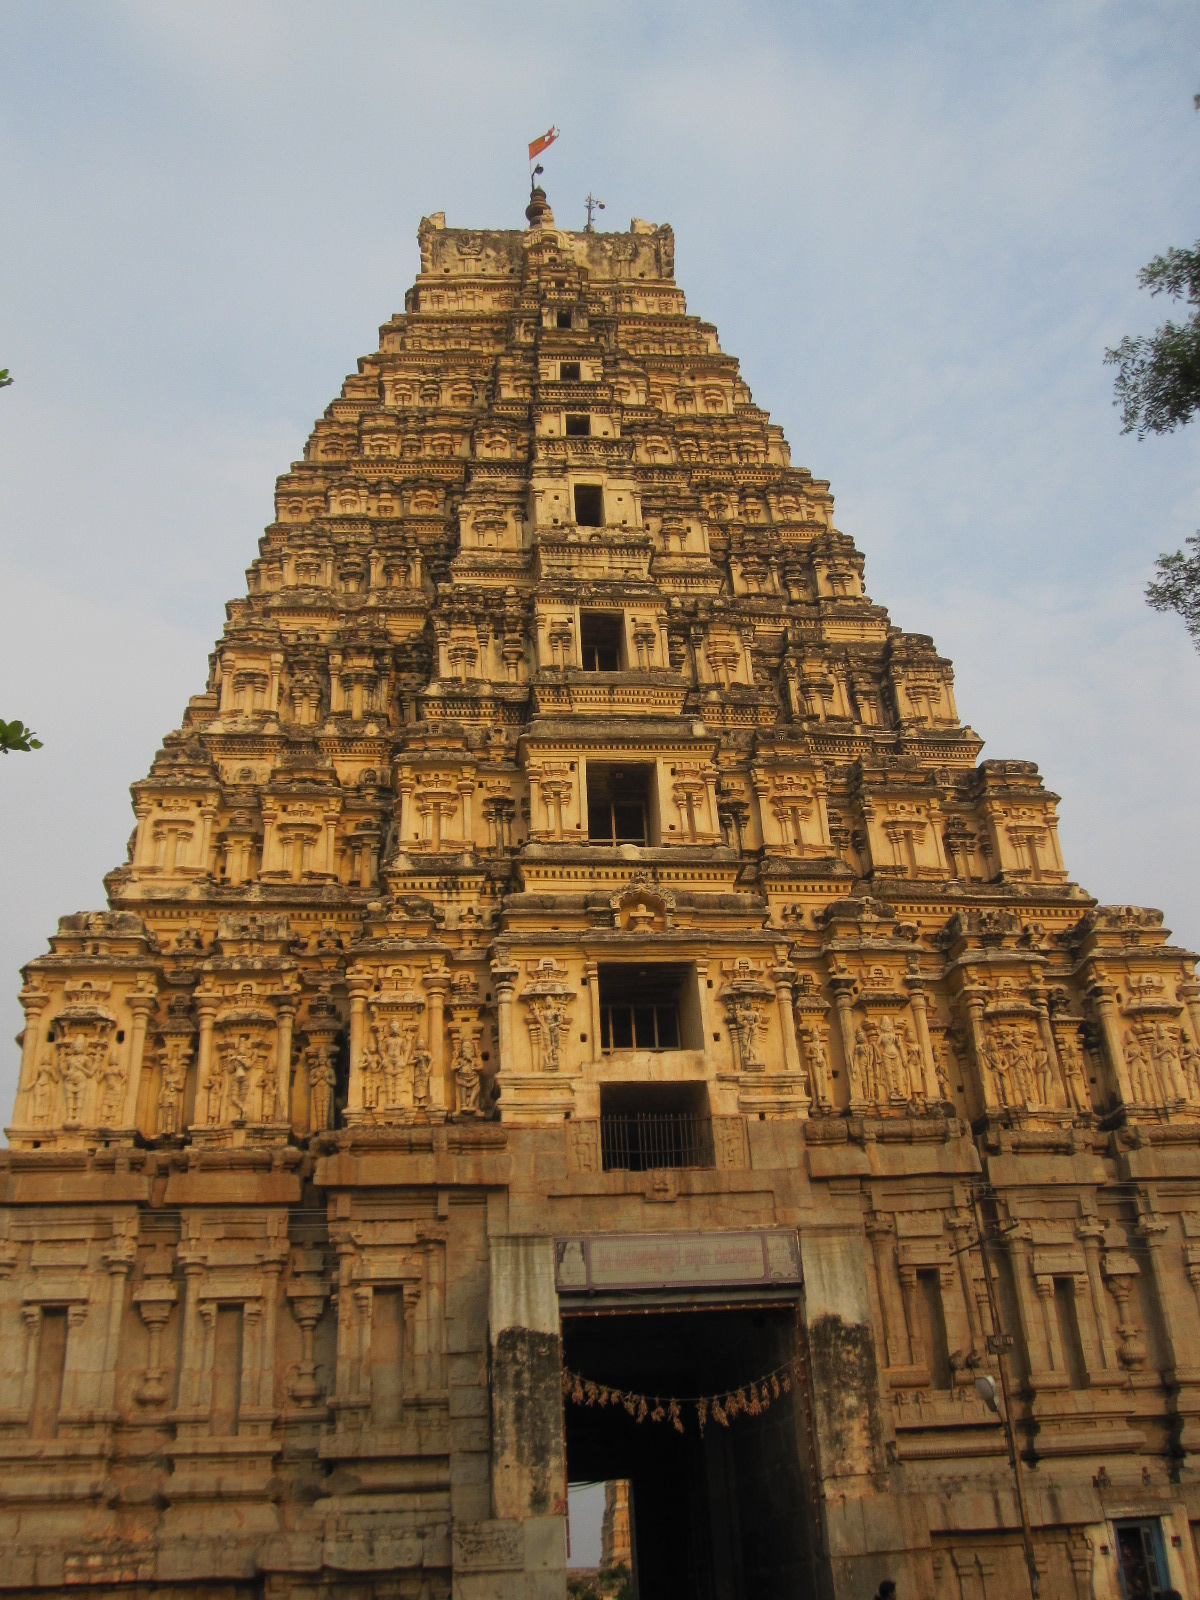 the gopuram at the entrance